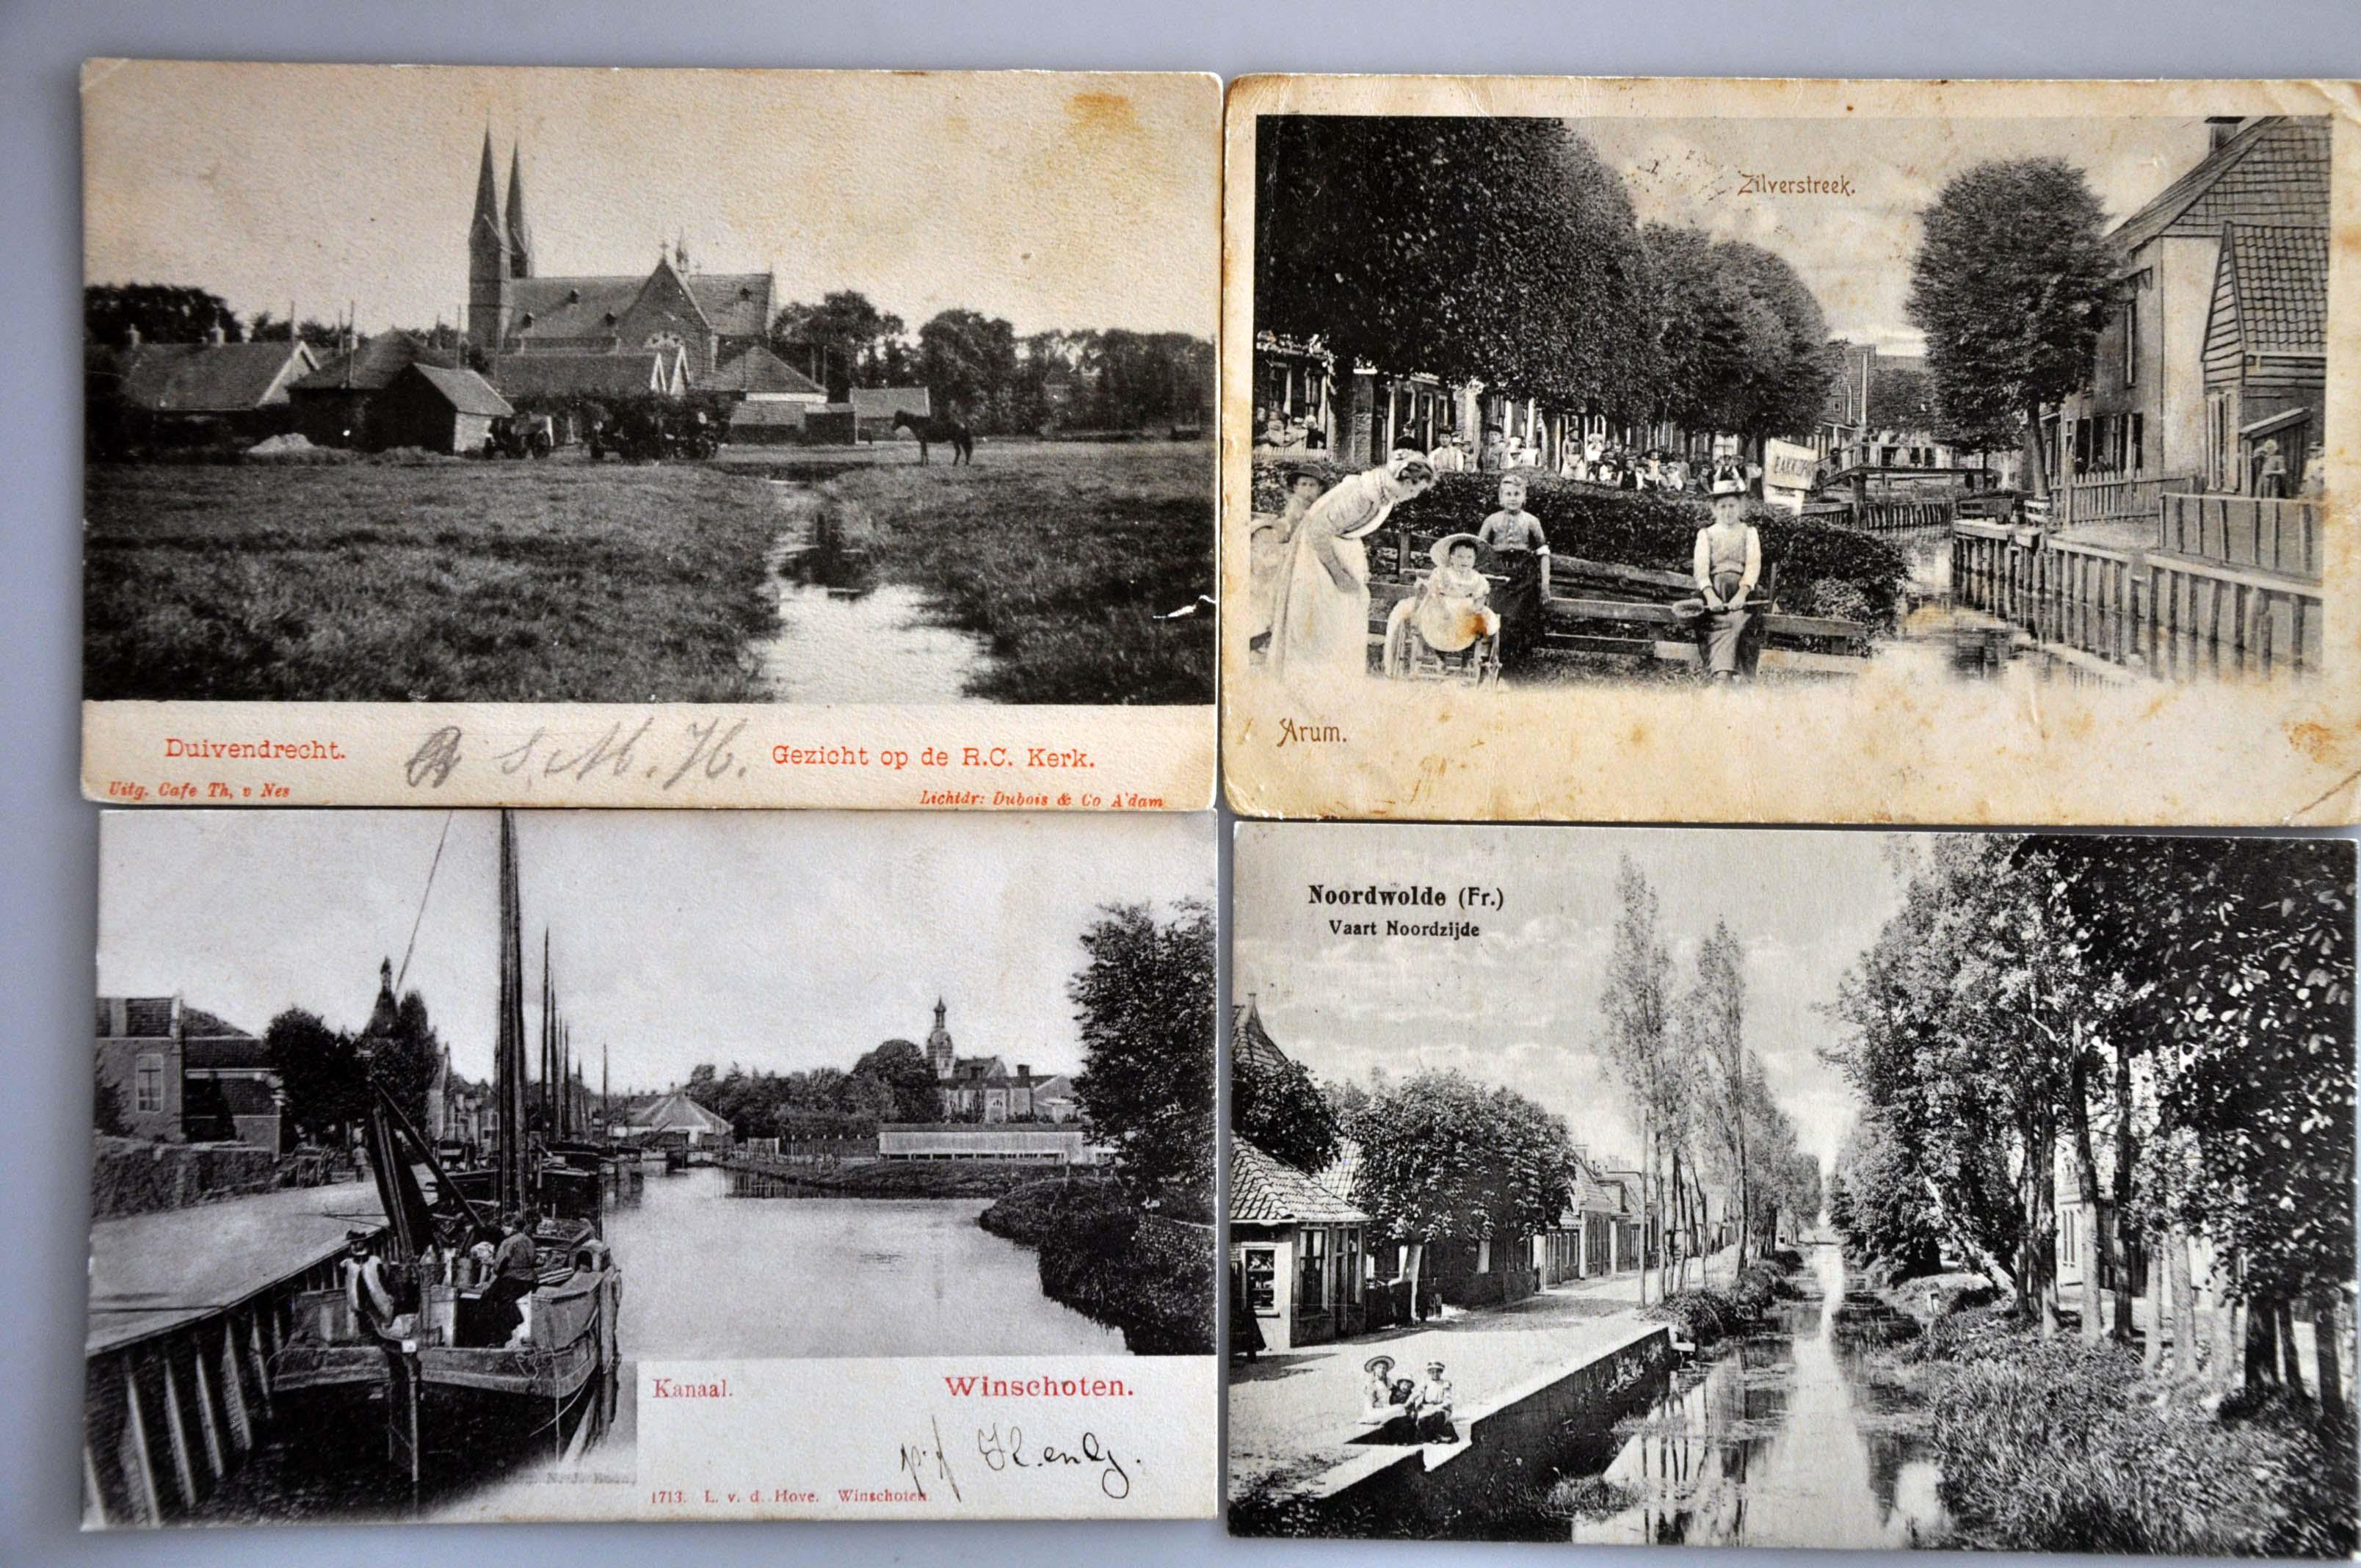 Lot 3004 - Netherlands and former colonies Netherlands -  Corinphila Veilingen Auction 245-246 Day 1 - Nepal - The Dick van der Wateren Collection, Foreign countries - Single lots, Picture postcards